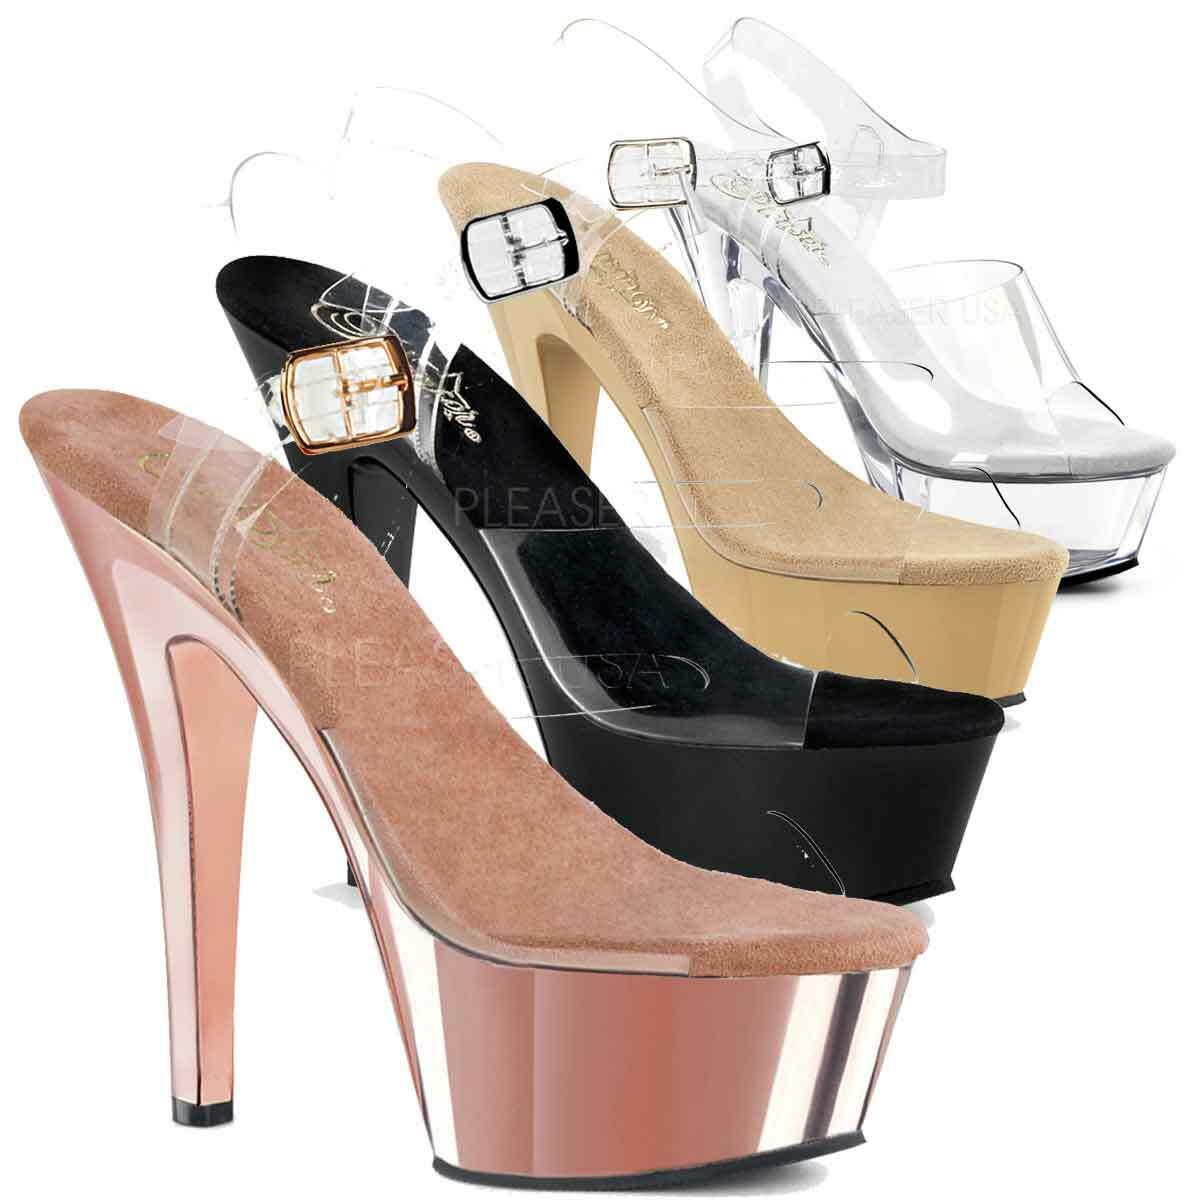 c2070d69d7d Pleaser Shoes